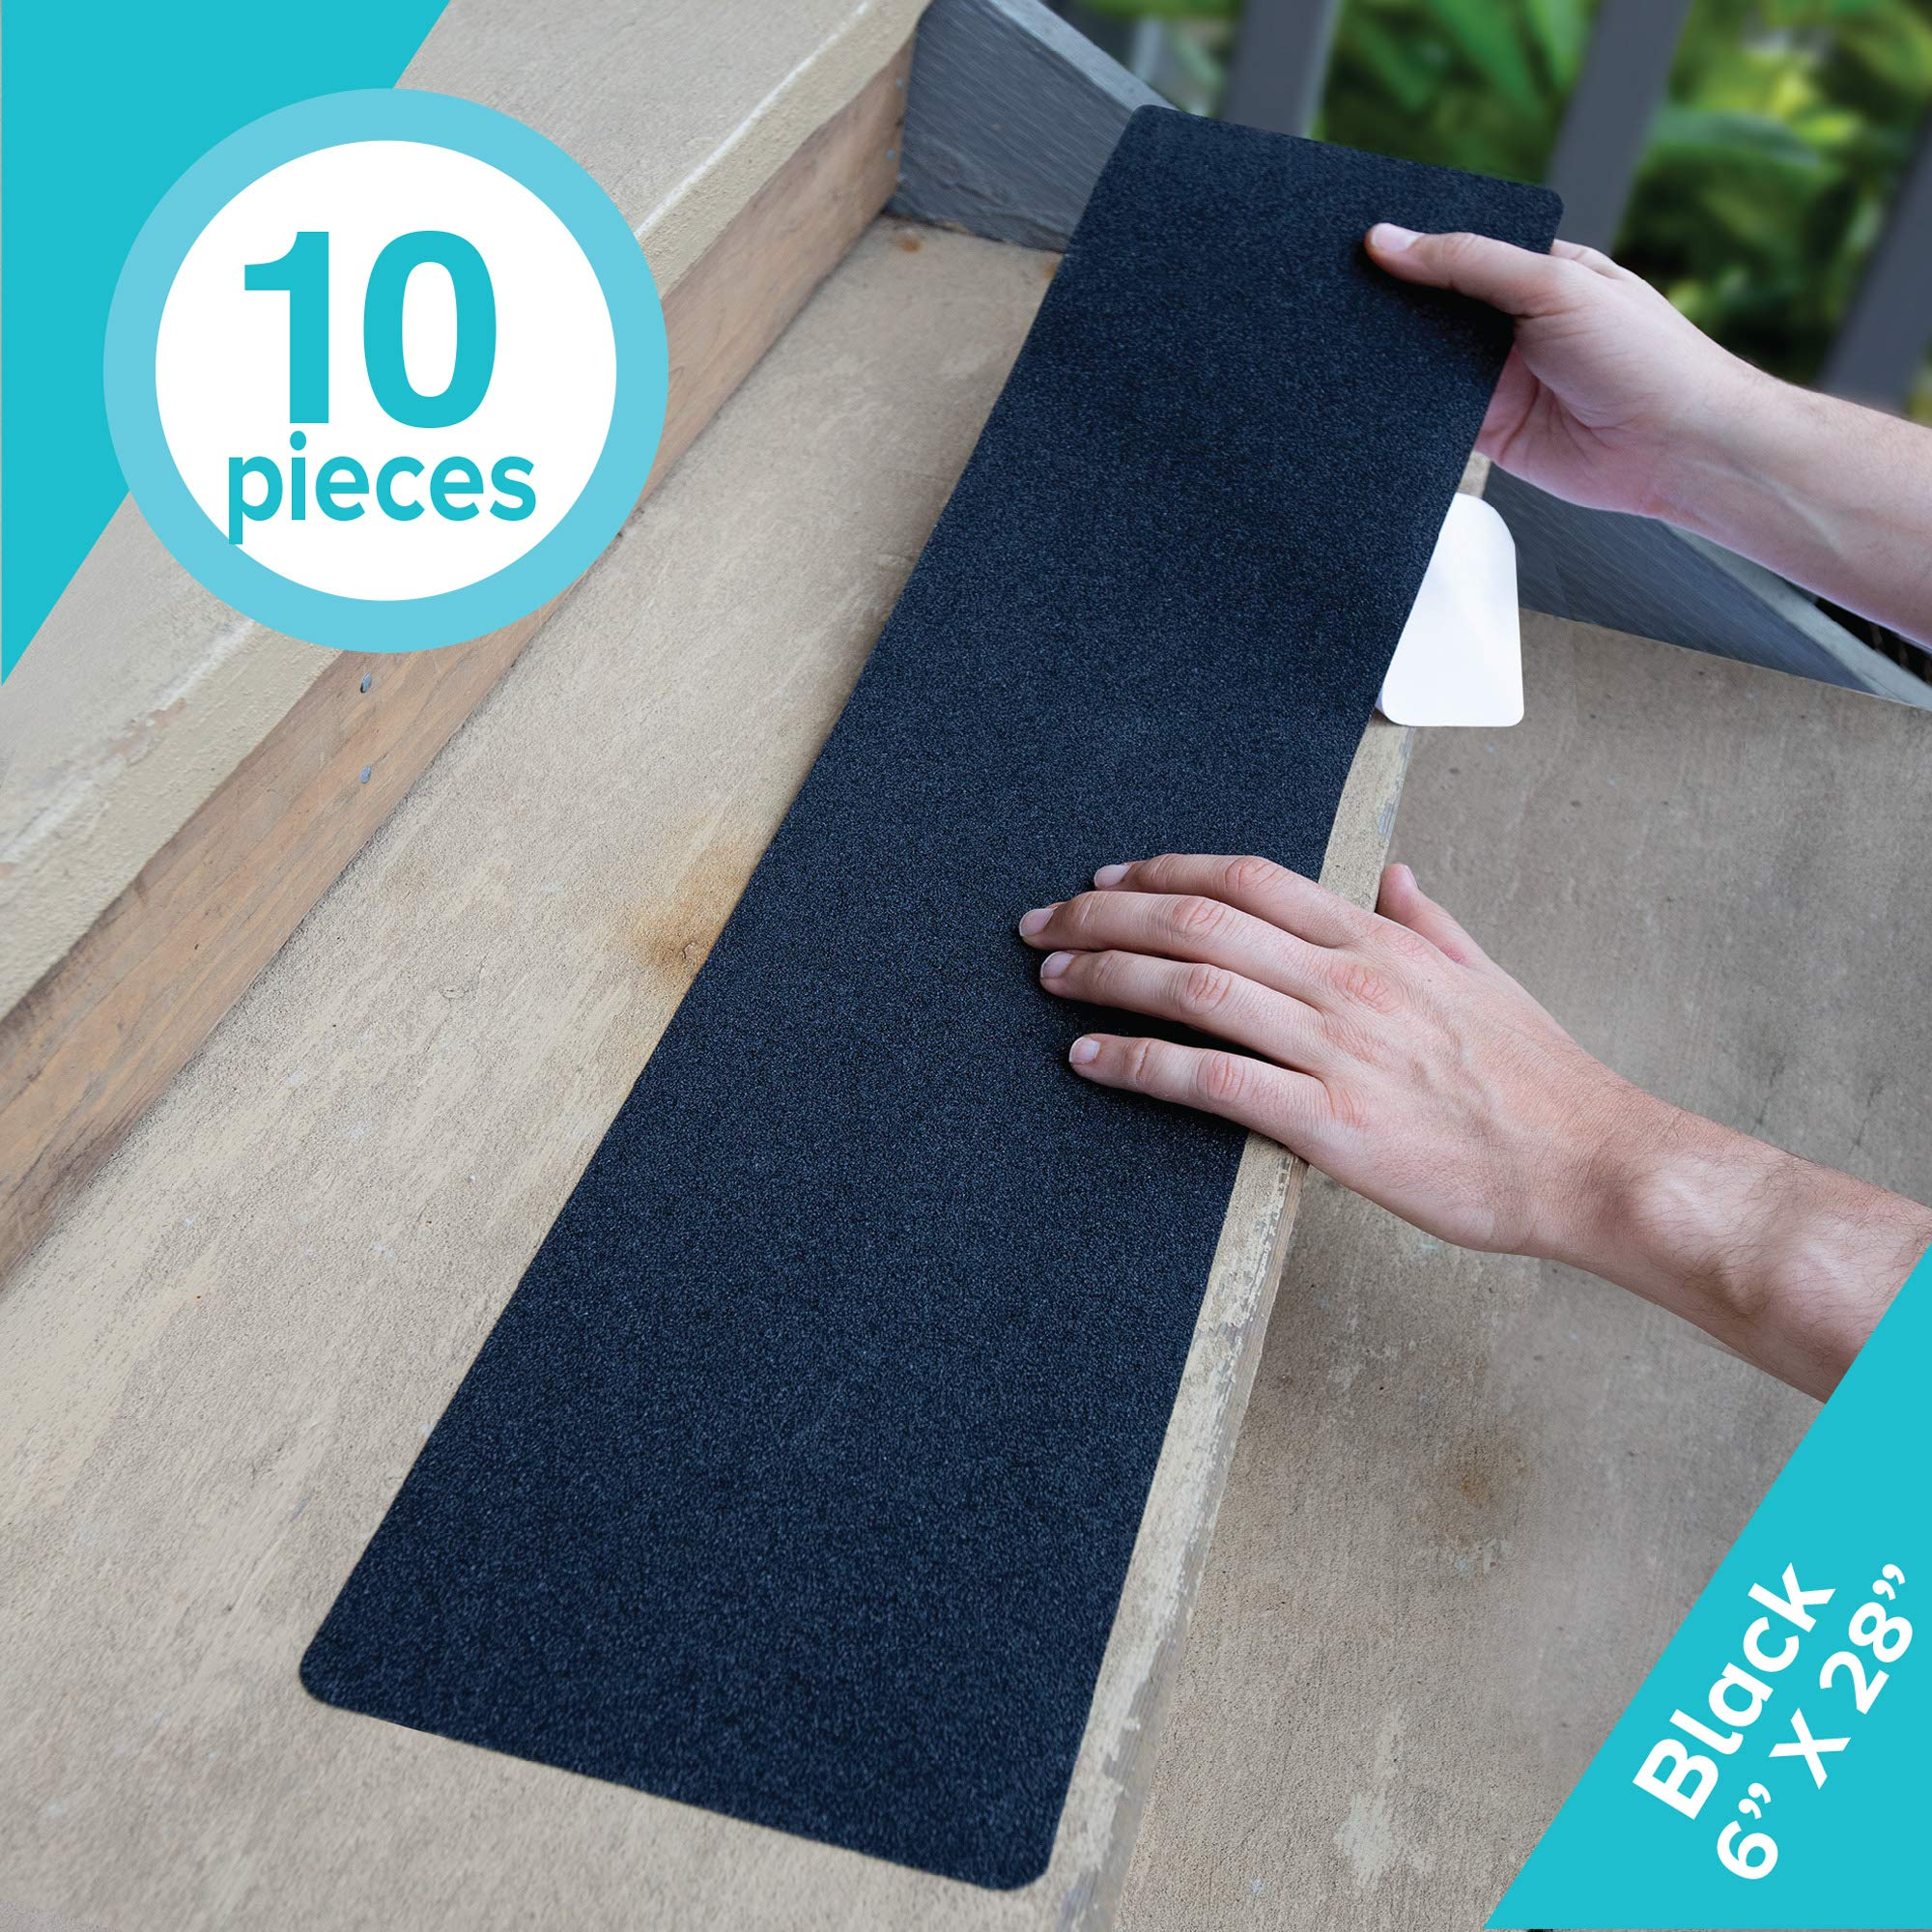 LifeGrip Anti Slip Traction Treads (10-Pack), 6 inch X 28 inch, Best Grip Tape Grit Non Slip, Outdoor Non Skid Tape, High Traction Friction Abrasive Adhesive for Stairs Step, Black by LifeGrip Stay on Track